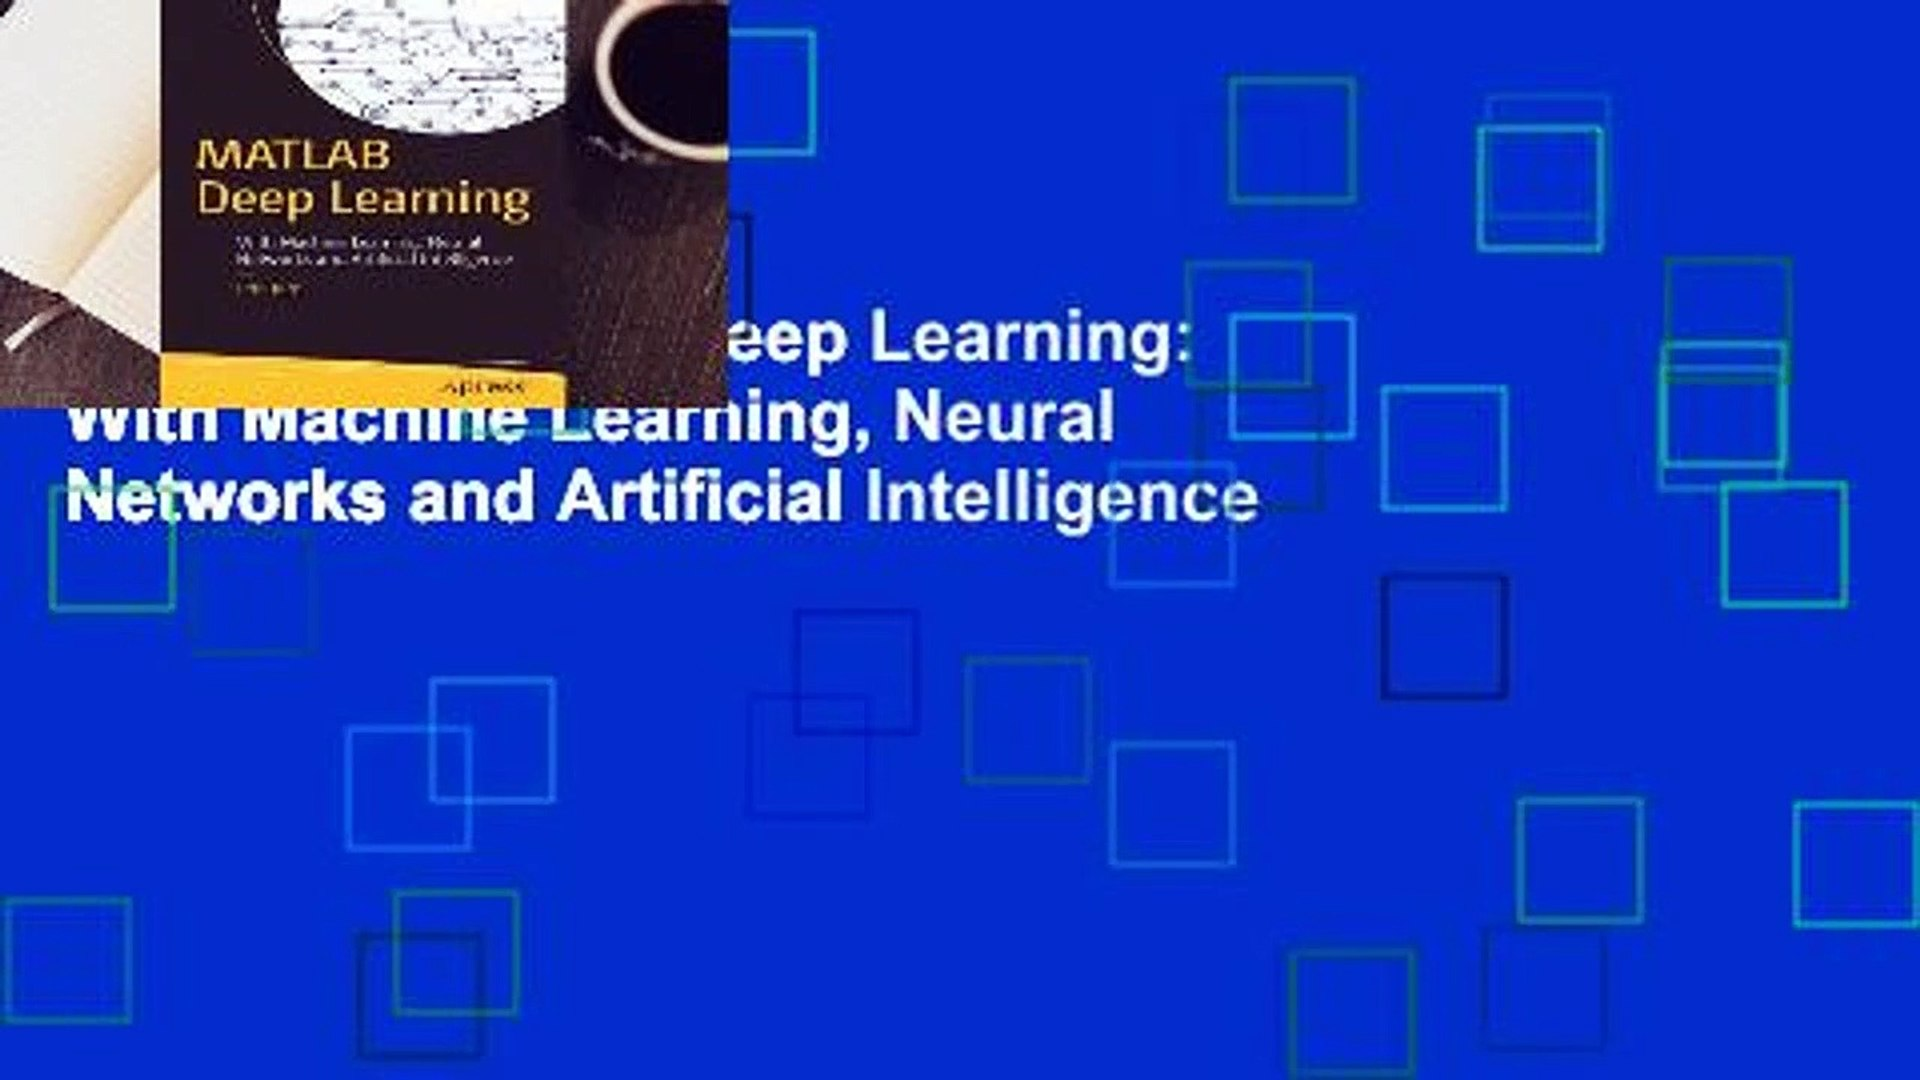 Library MATLAB Deep Learning: With Machine Learning, Neural Networks and  Artificial Intelligence